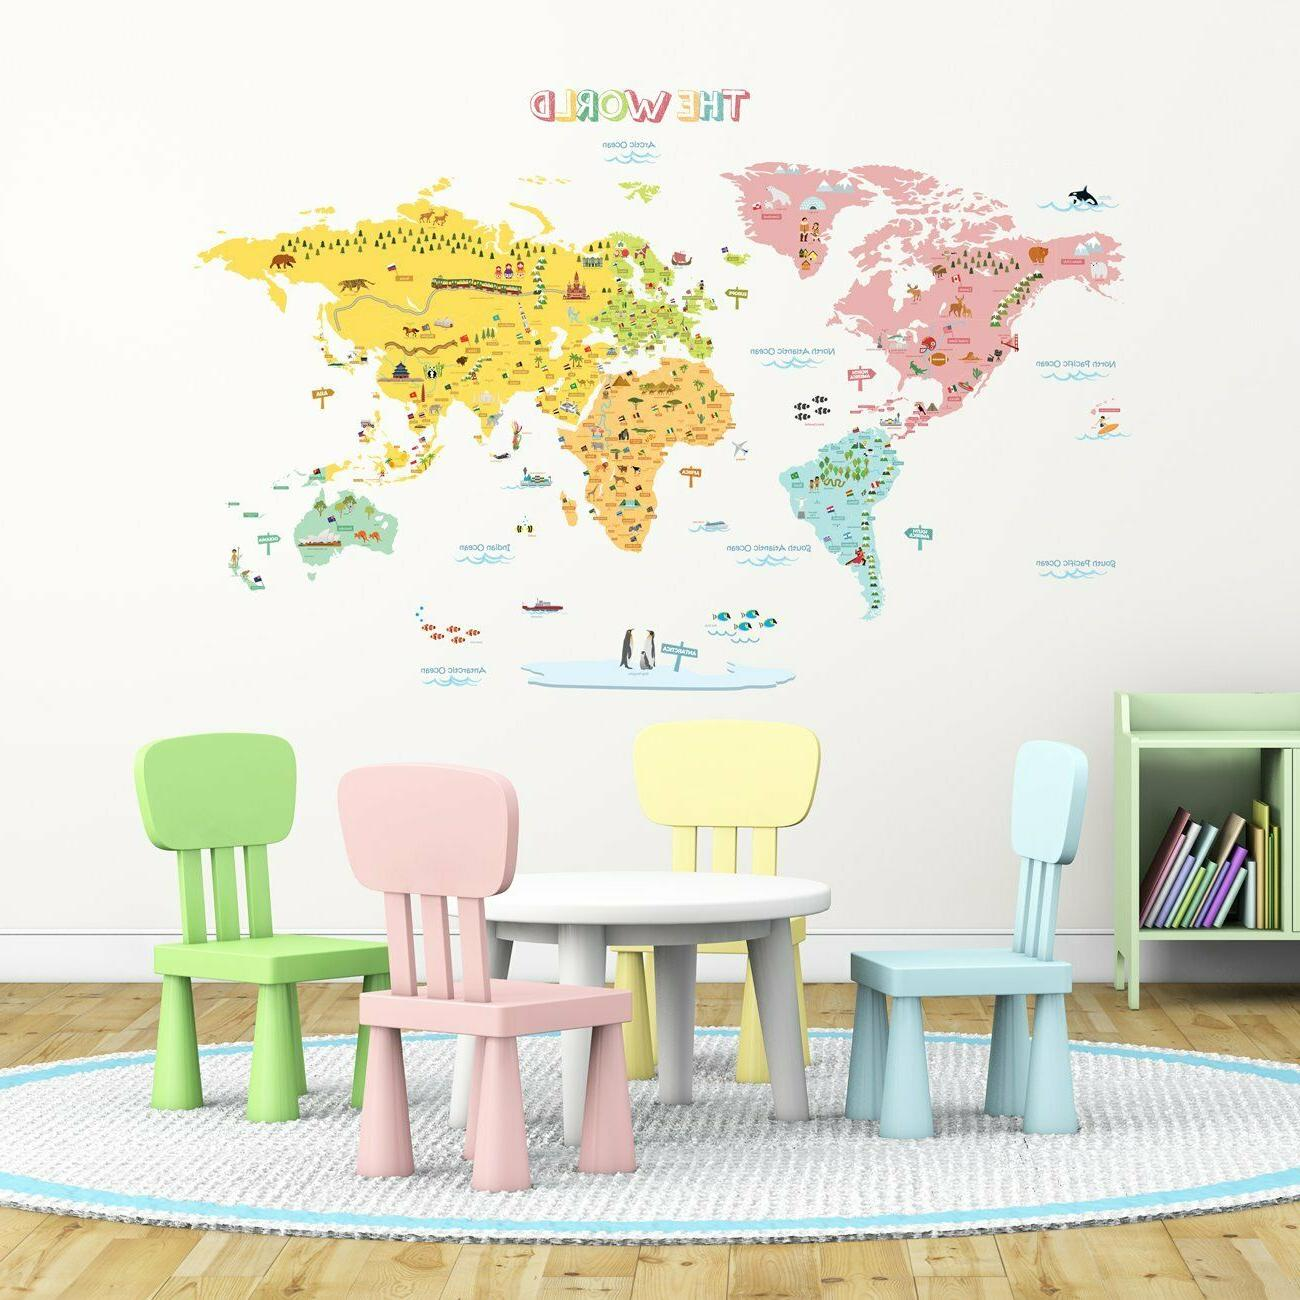 Colorful XL Kids Wall Decals Peel & Stick Nursery